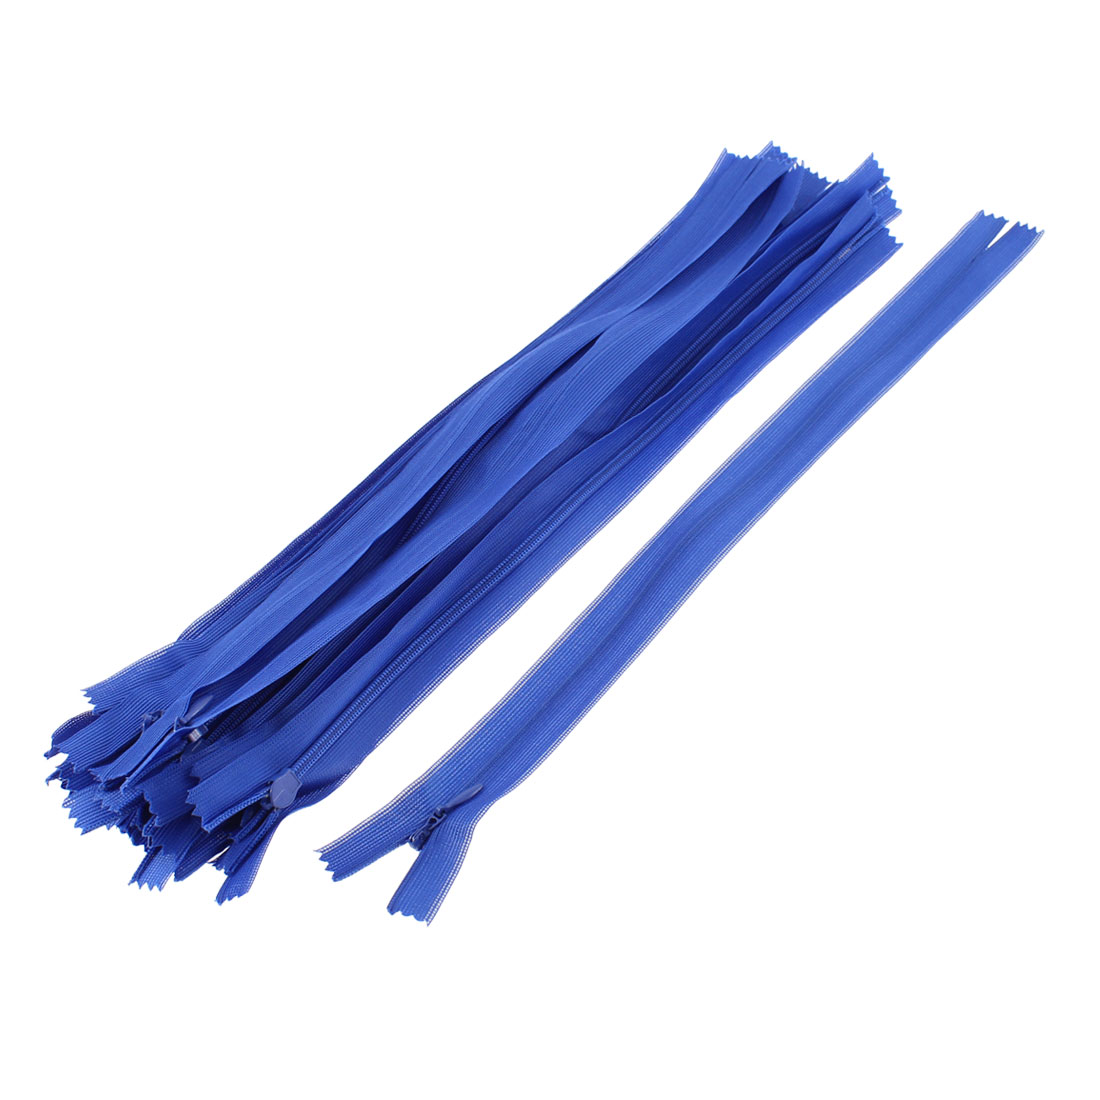 20 Pcs 12-inch Long Blue Nylon Zippers Zips for Clothing